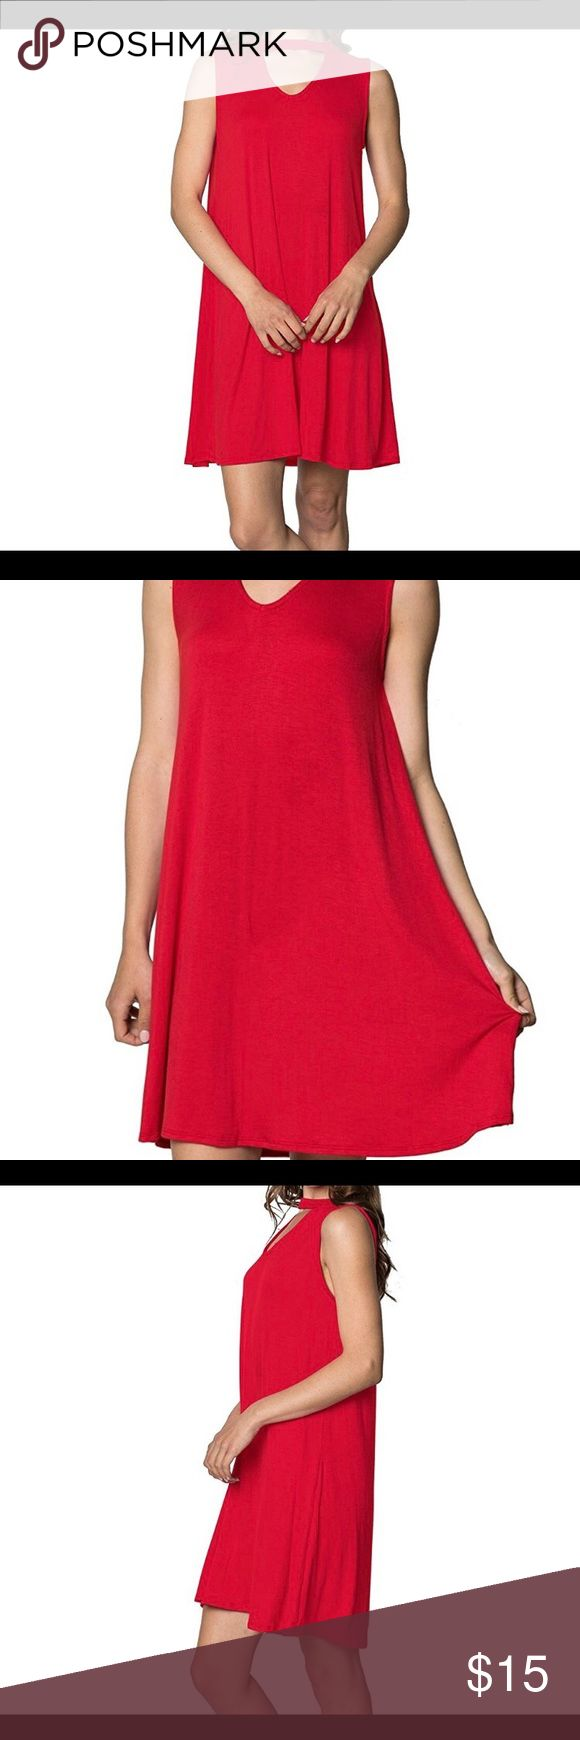 NWT Red tunic flow dress size large Brand new! This dress is made with high quality materials for maximum durability and style.The sleeveless dress is made with 95% rayon and 5% spandex that makes it soft for ultimate comfort.The loose fit of the dress makes it ideal for every woman that wants to look her best without compromising her comfort and convenience.This dress will flatter every silhouette and it will make you look elegant and stylish. Measurements: size large 12-14. Chest/bust…